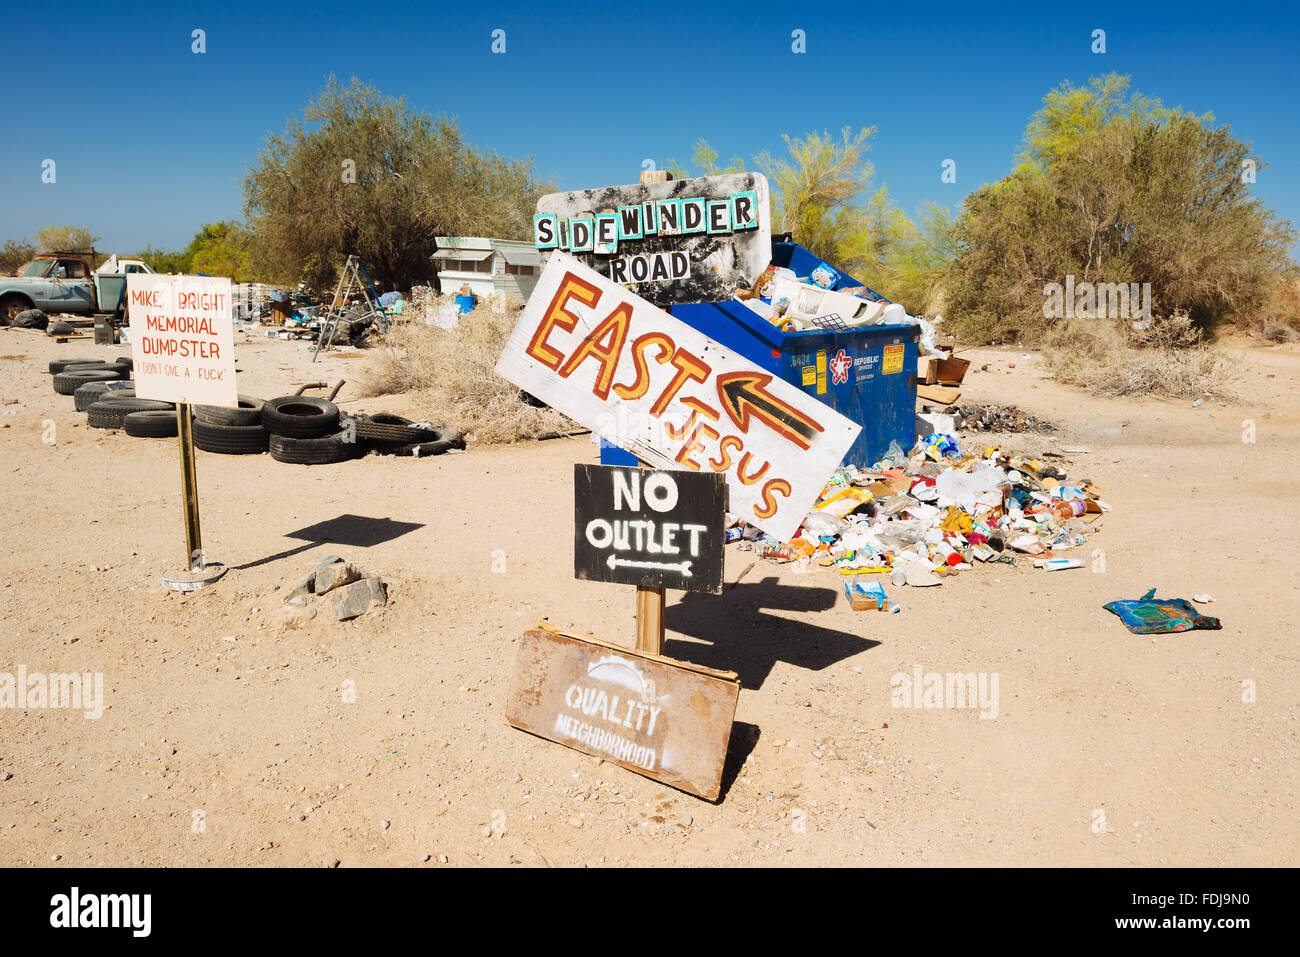 Signs pointing to various points of interest in Slab City, California - Stock Image